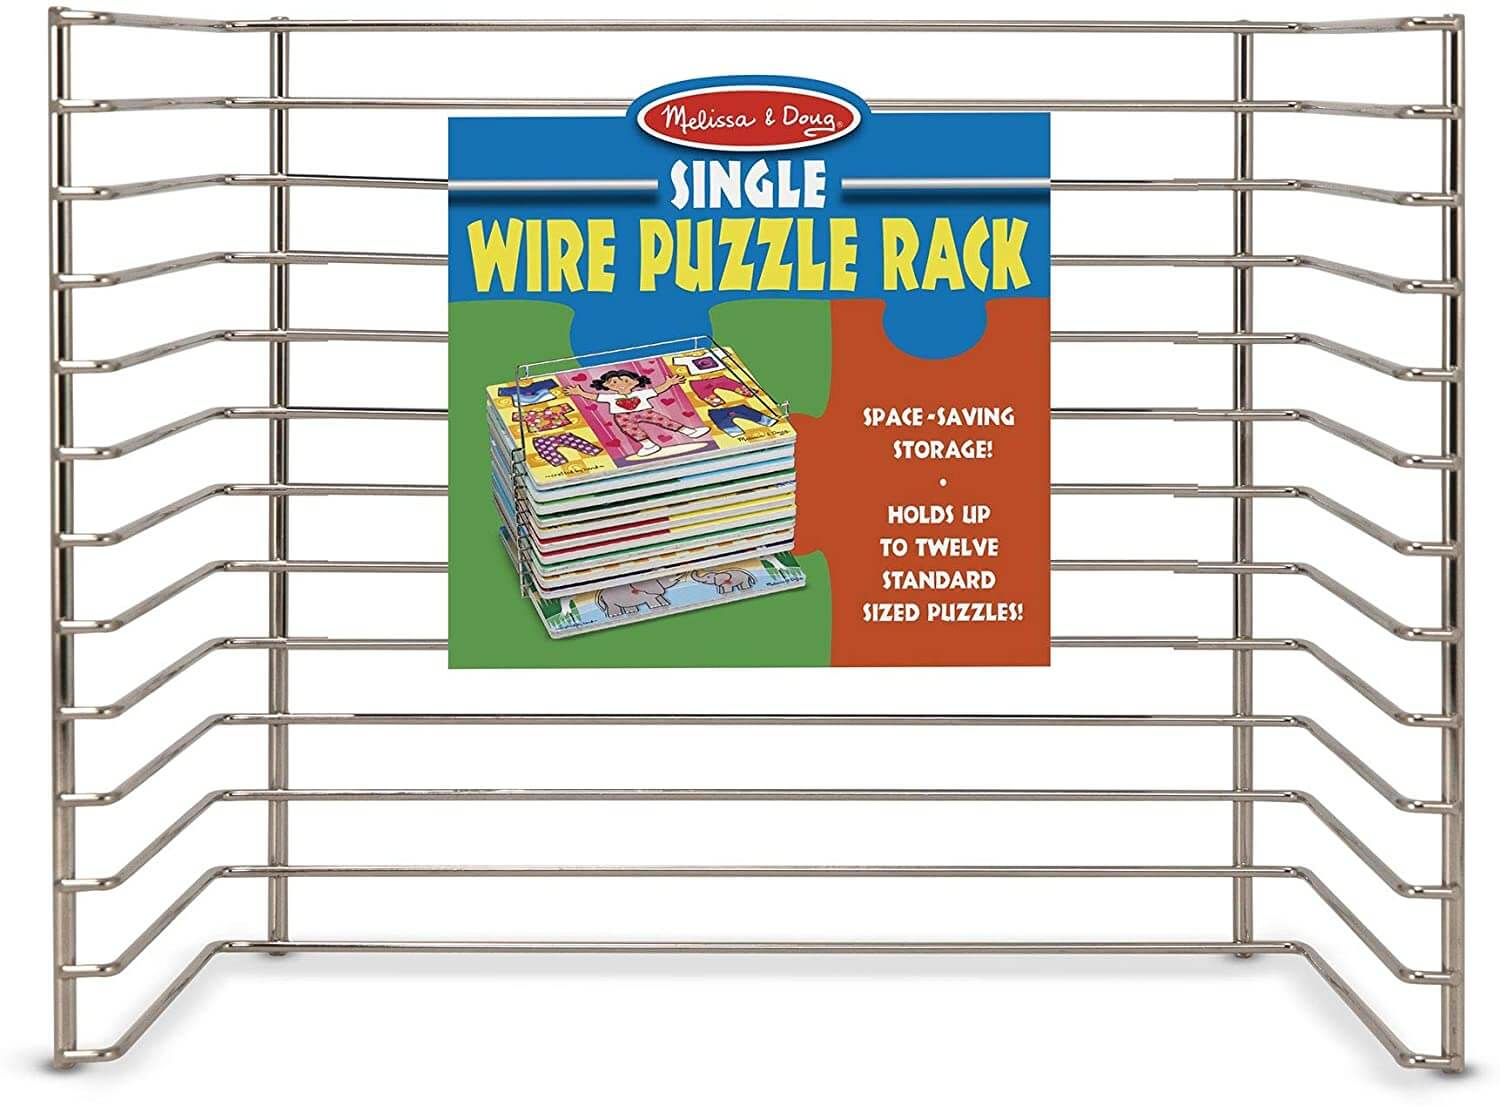 SINGLE WIRE PUZZLE RACK